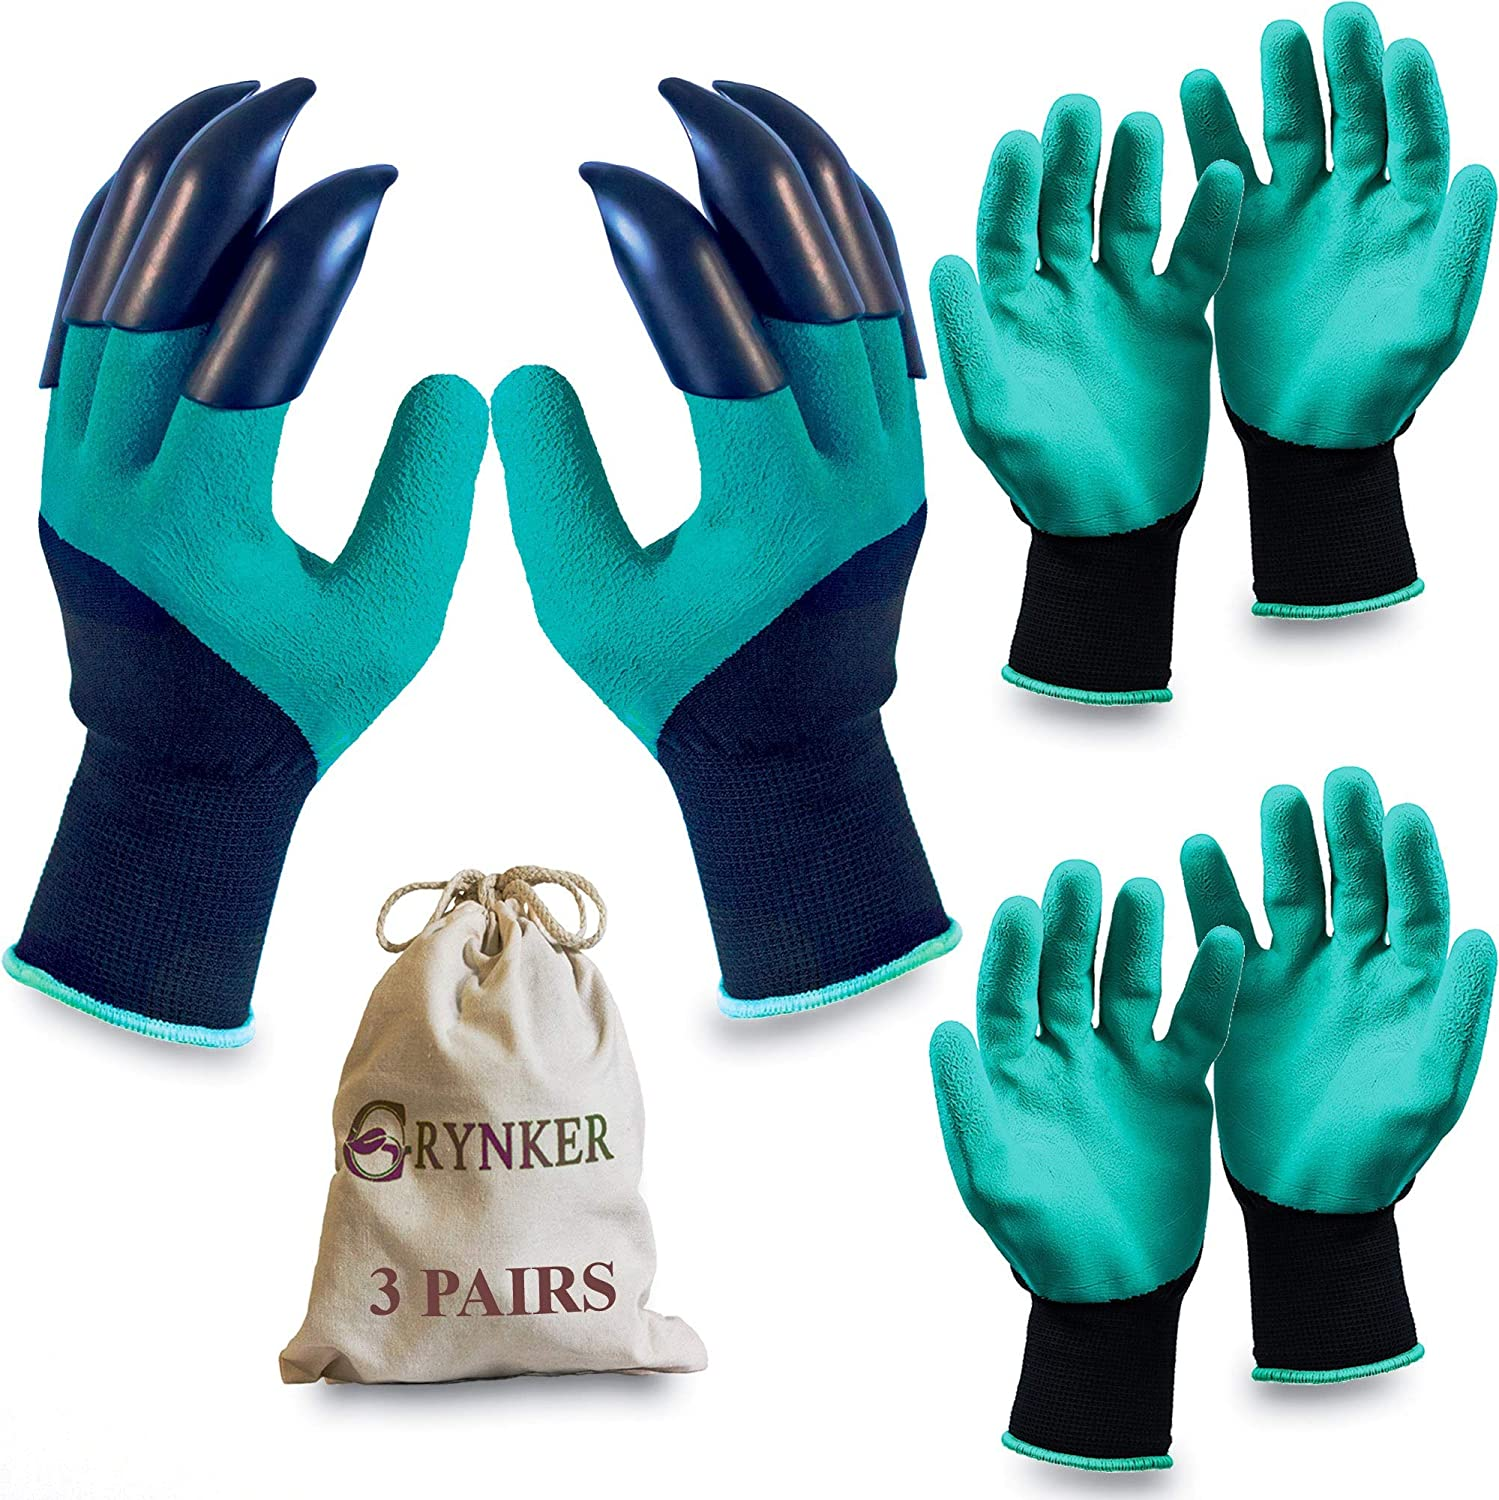 Garden Gloves with Claws - 3 Pairs for Digging, Planting, Weeding, Seeding - Waterproof, Protect Nails and Fingers, Gardening Gift - Green Genie